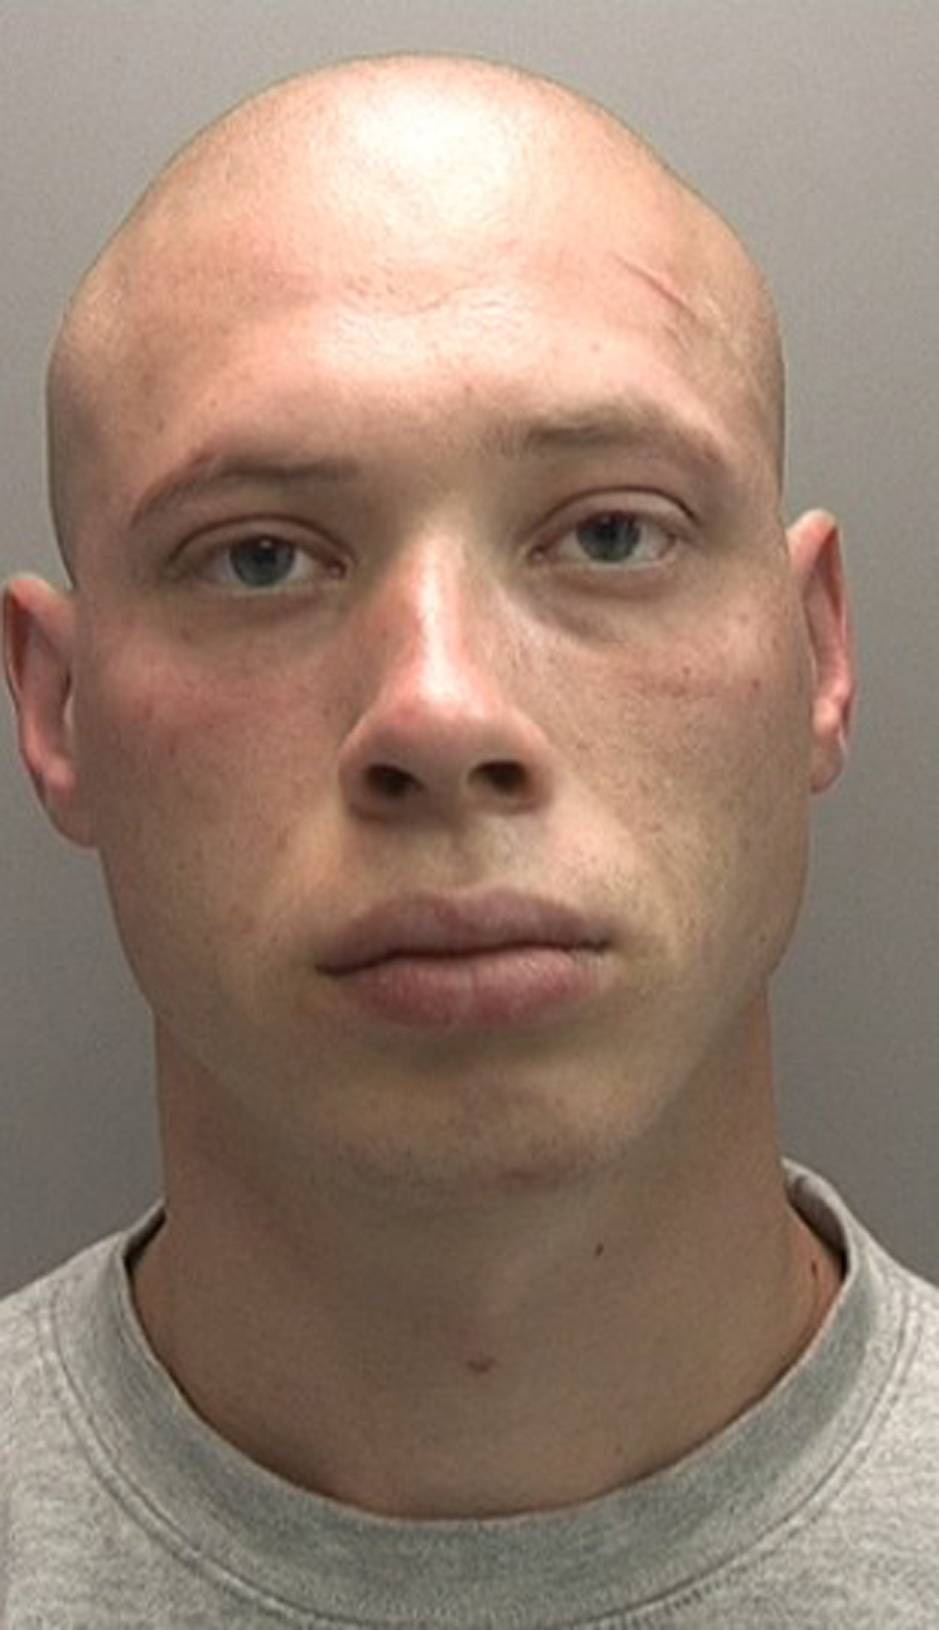 Susorovs was jailed at Lincoln Crown Court on June 20